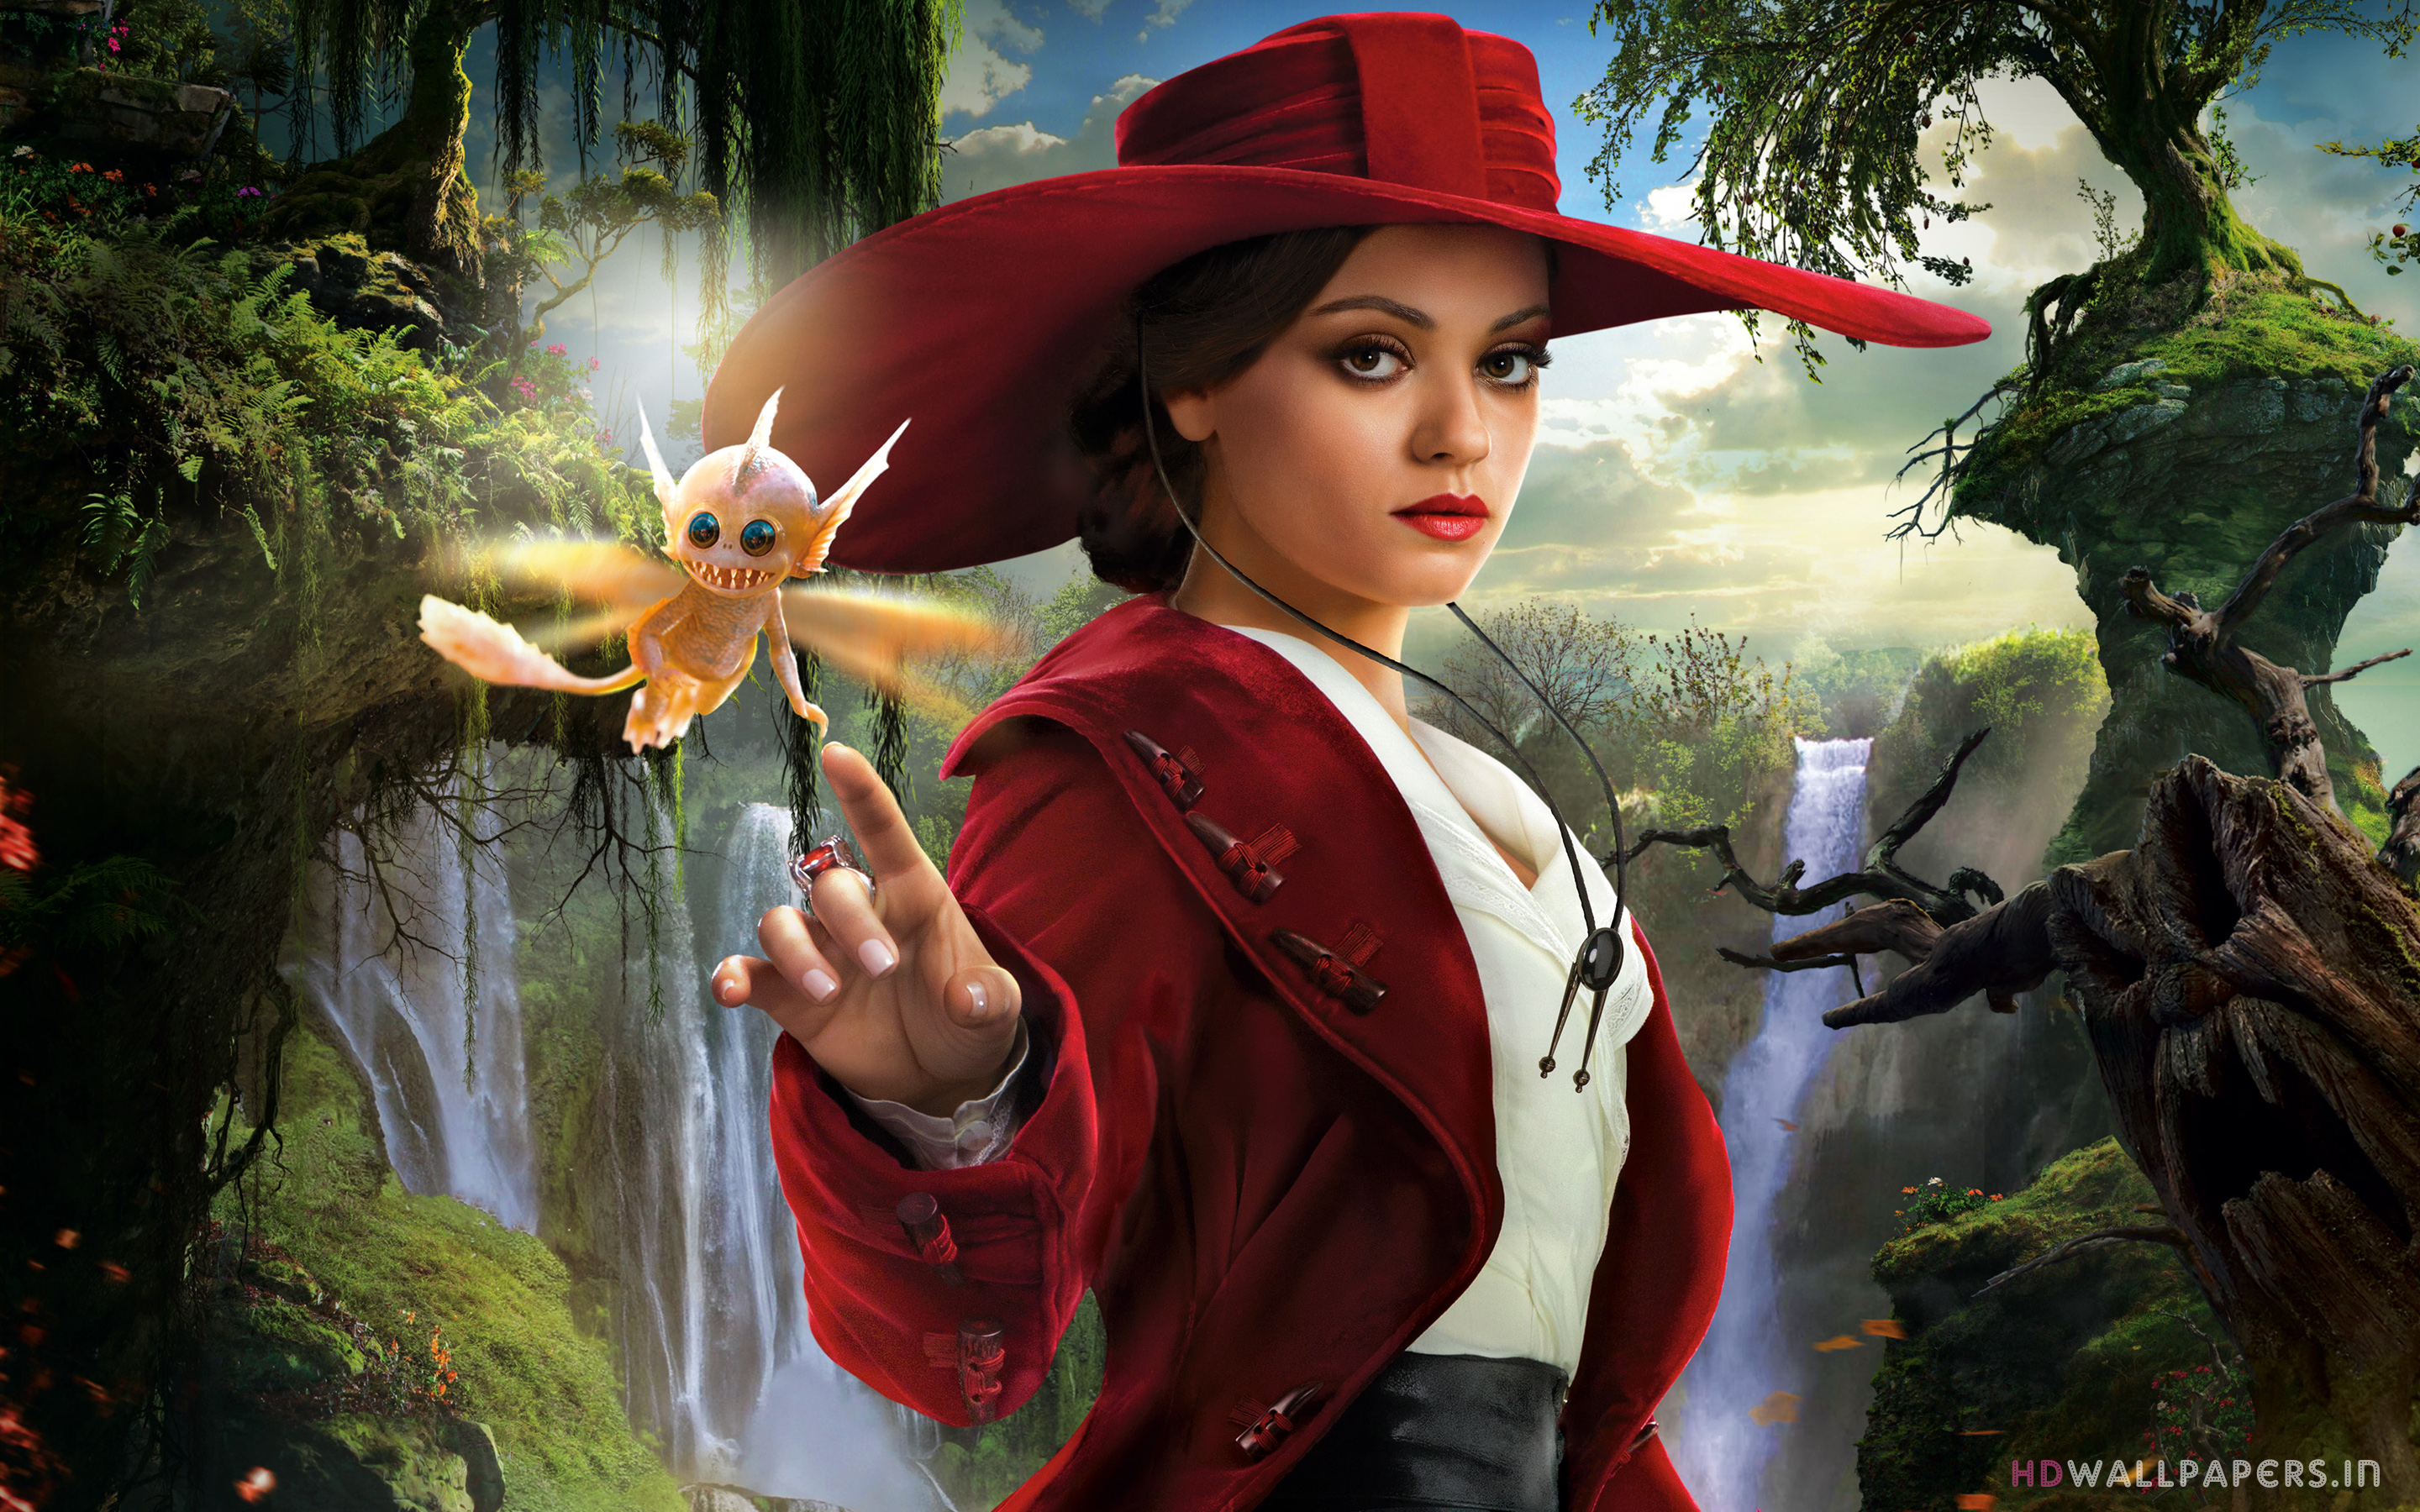 Mila Kunis Oz the Great and Powerful 648.79 Kb